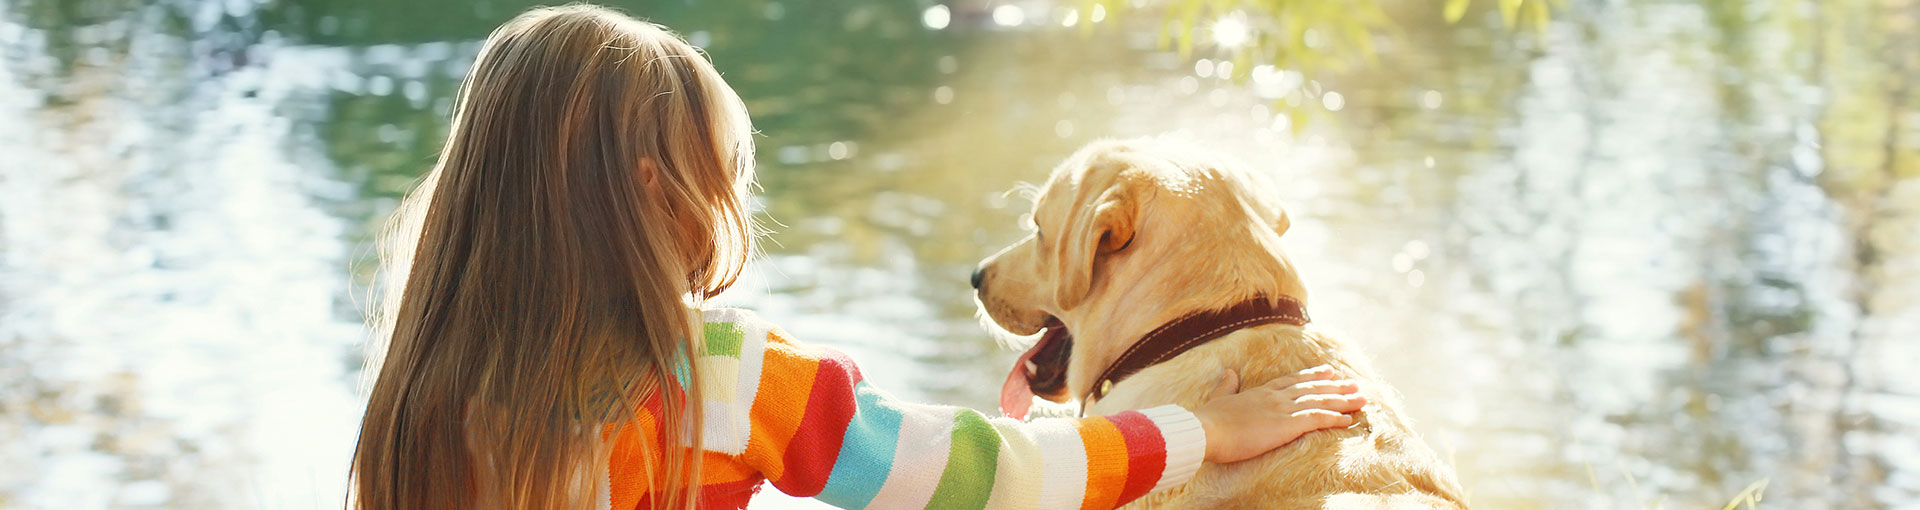 Quality Inn's offering pet friendly hotel accommodations with families with dogs